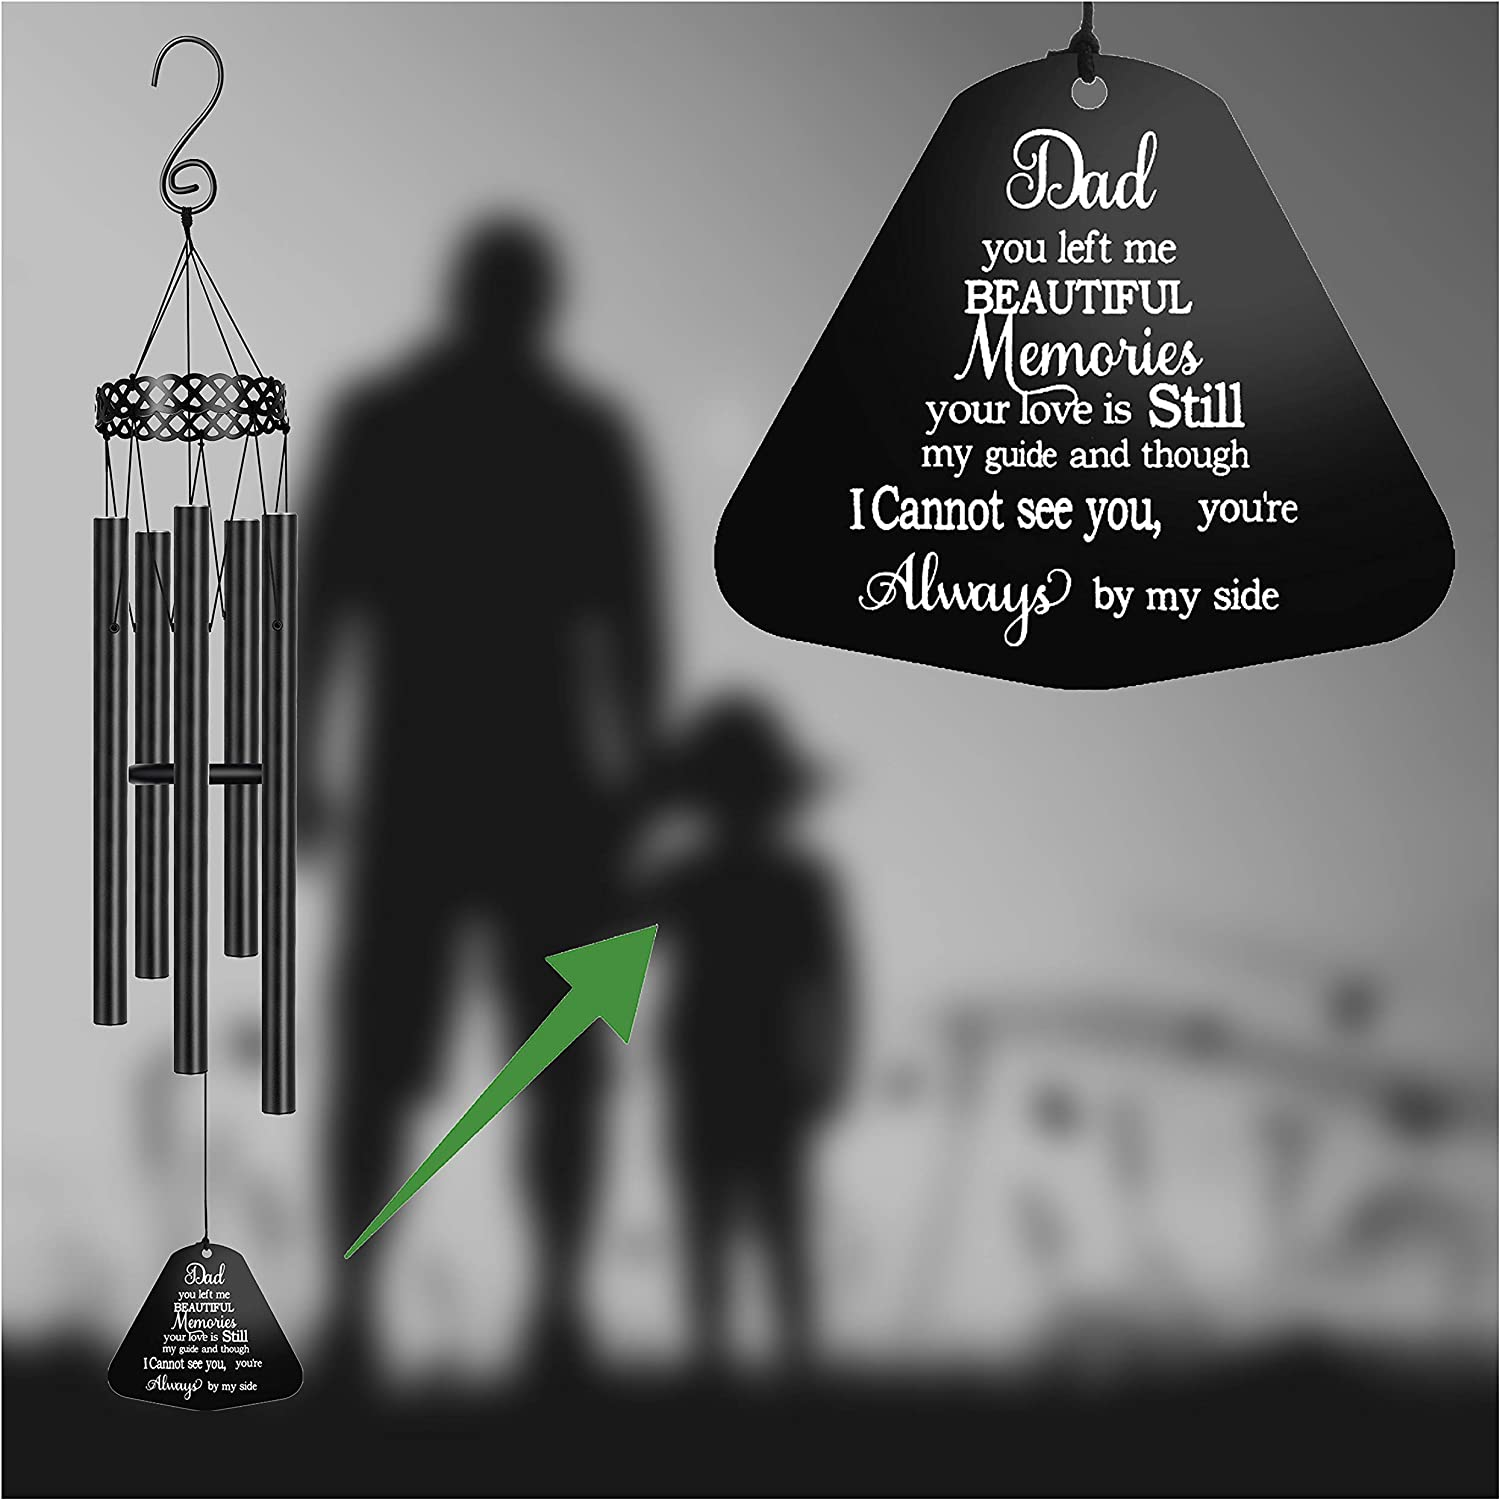 MEMGIFT Memorial Wind Chimes for Loss of Dad Sympathy Gifts Rememberance in Memorial Loss Father Large Angel Windchimes Outside Outdoor Garden Dad You Left me Beautiful Memories Your Love